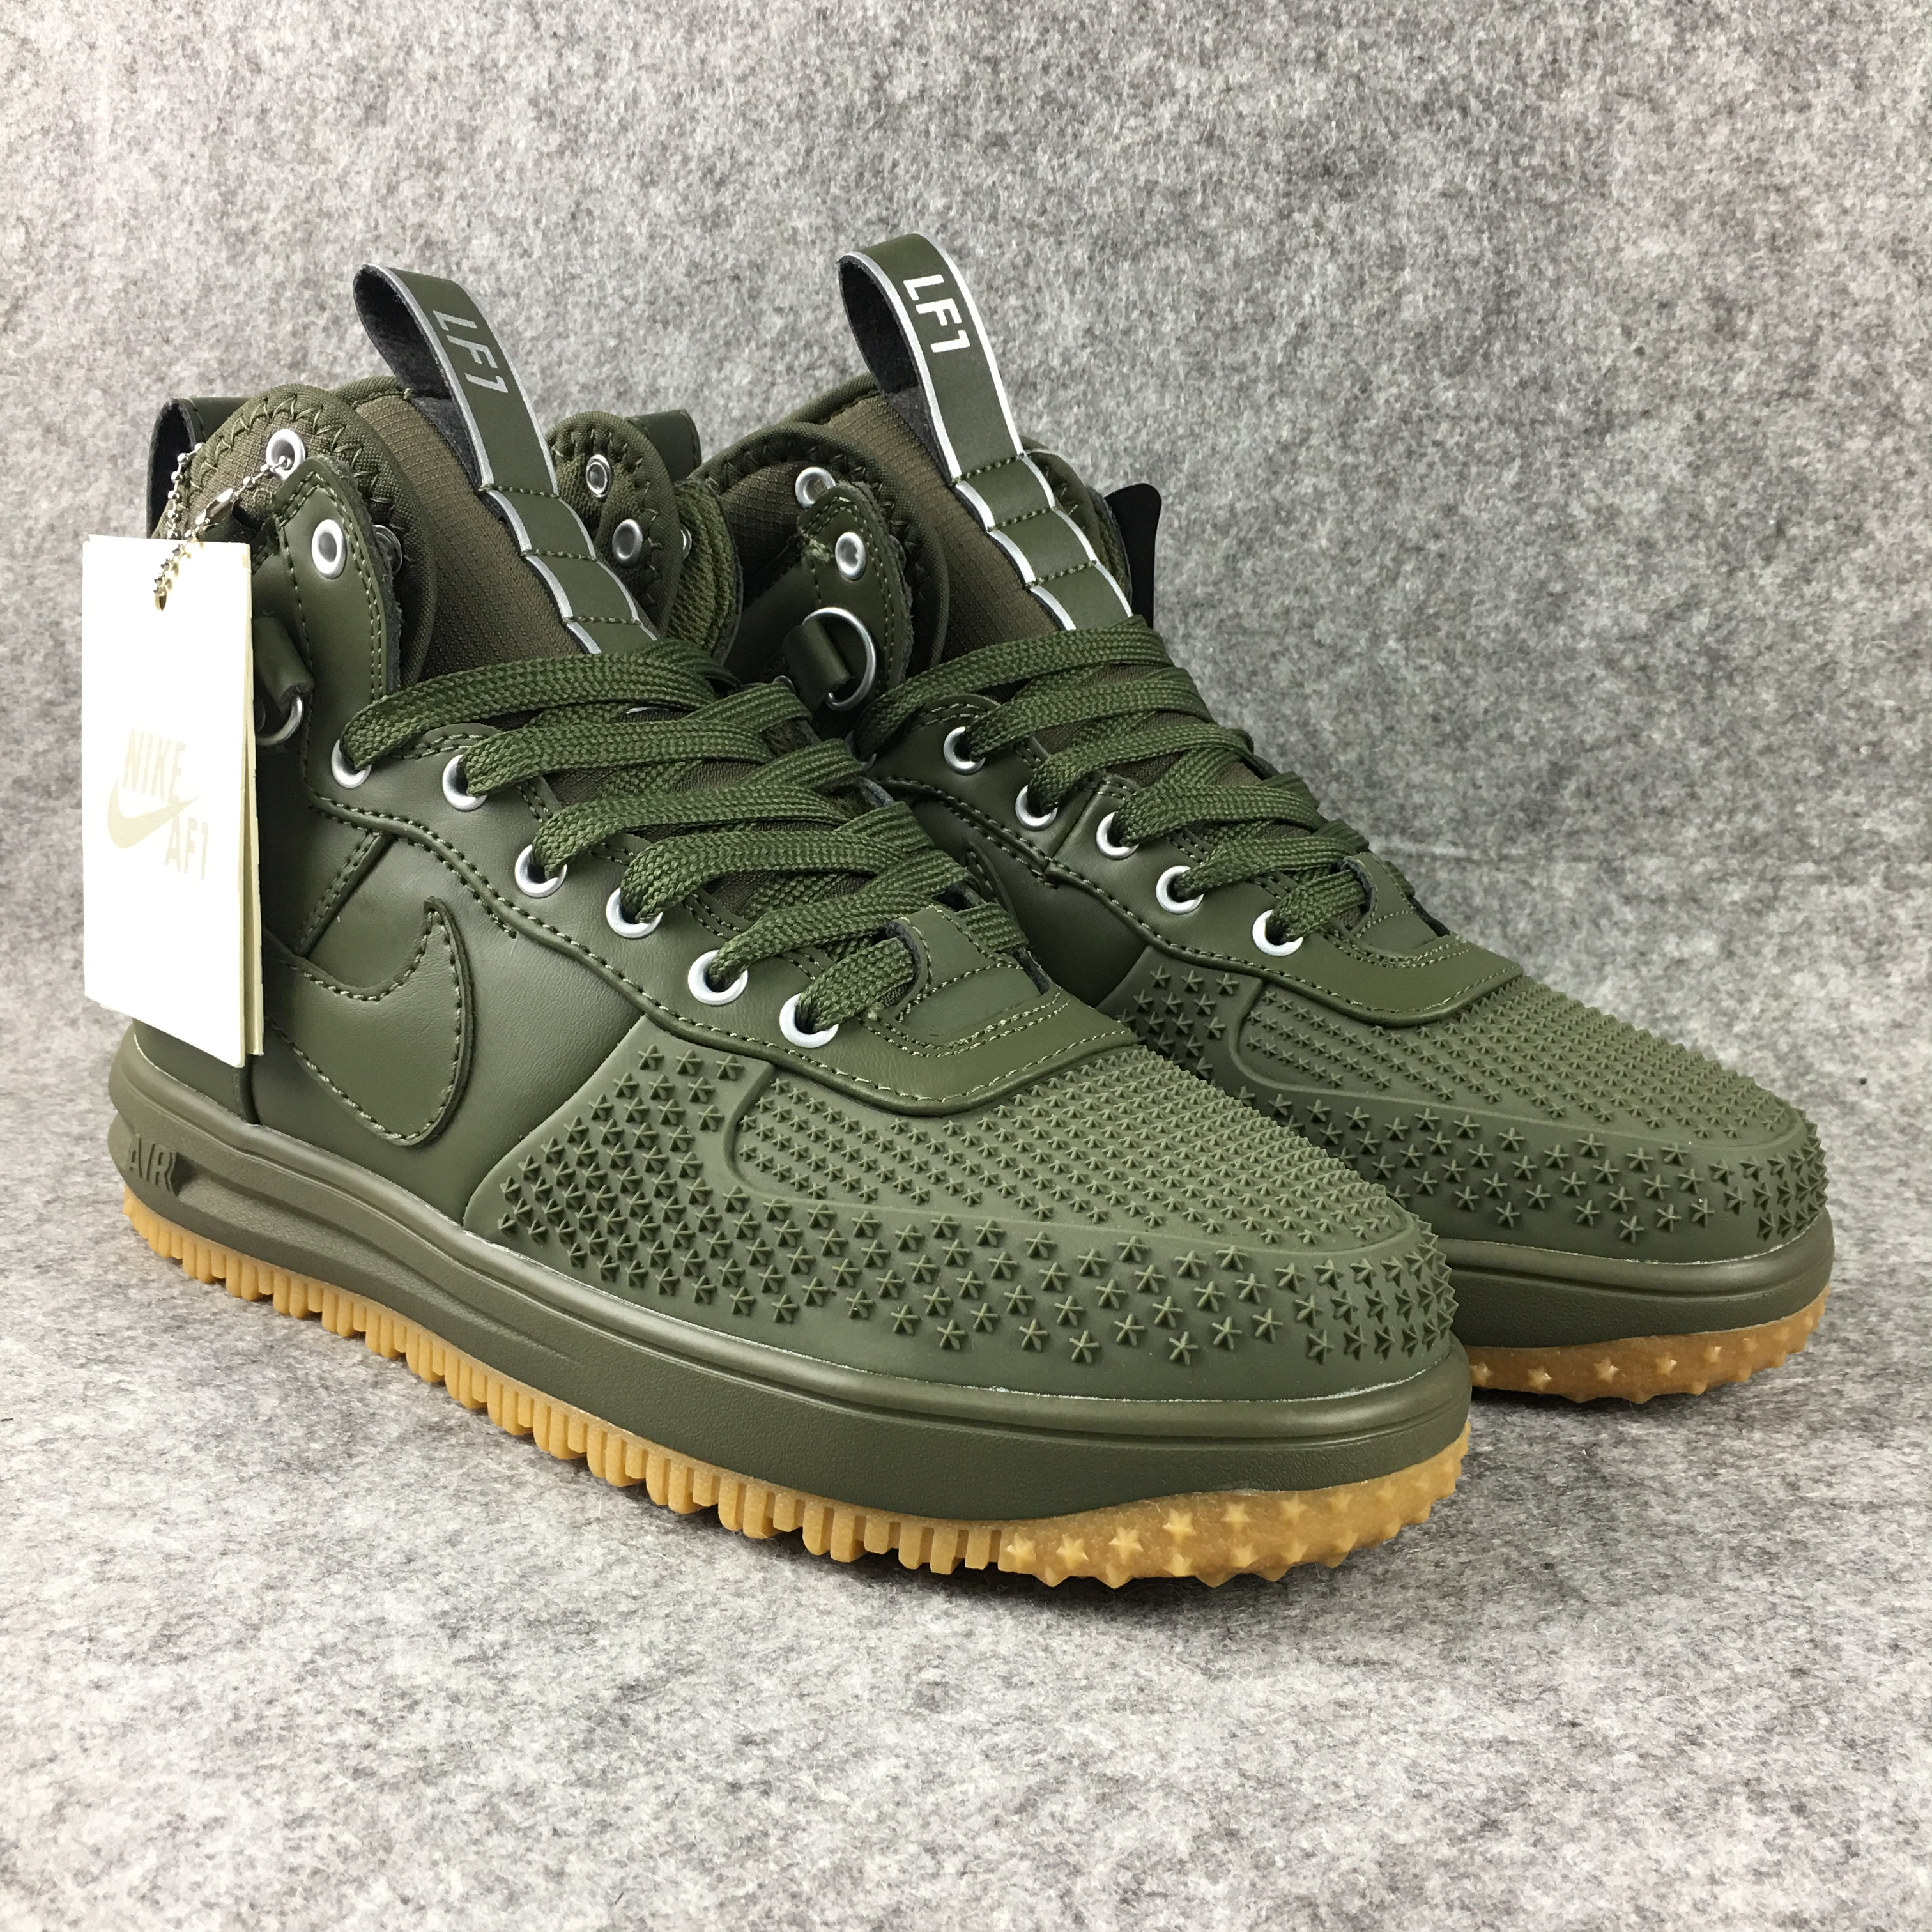 New Nike Lunar Force 1 High All Green Gum Sole